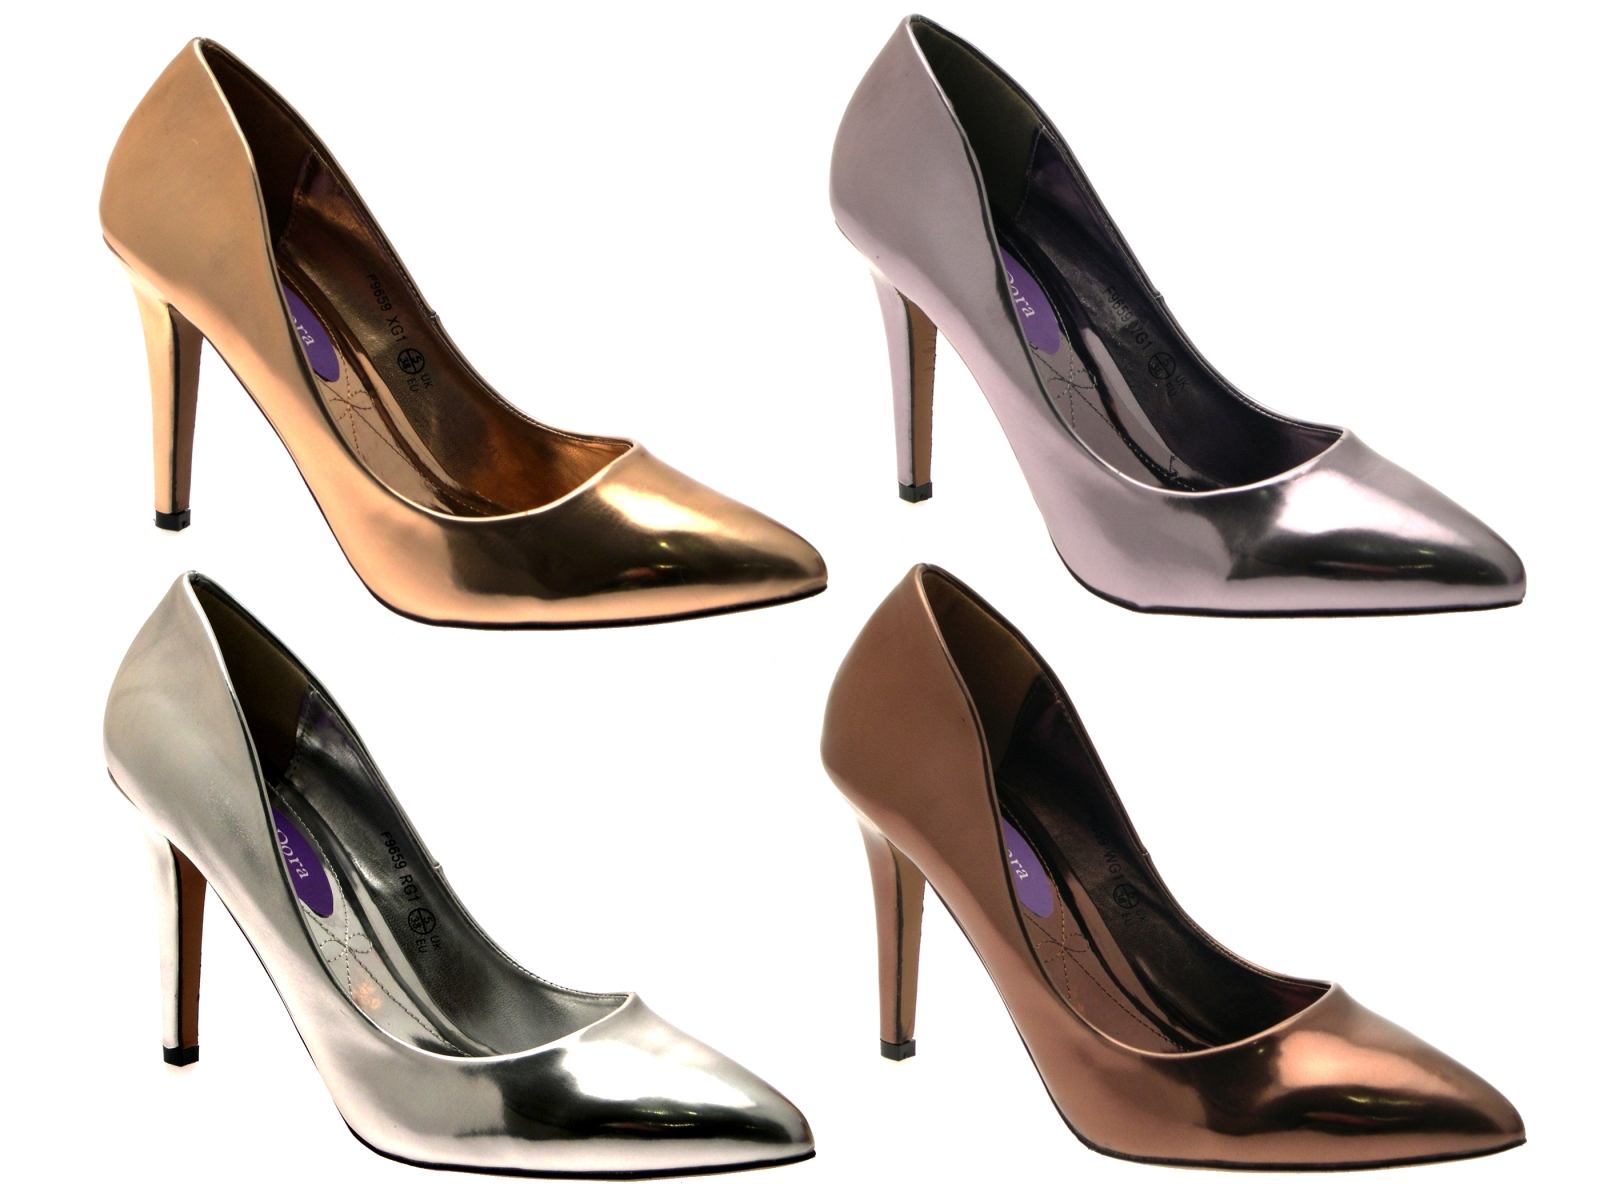 Womens-Metallic-Pointed-Toe-Court-Stiletto-High-Heels-Ladies-Work-Office-Shoes thumbnail 33